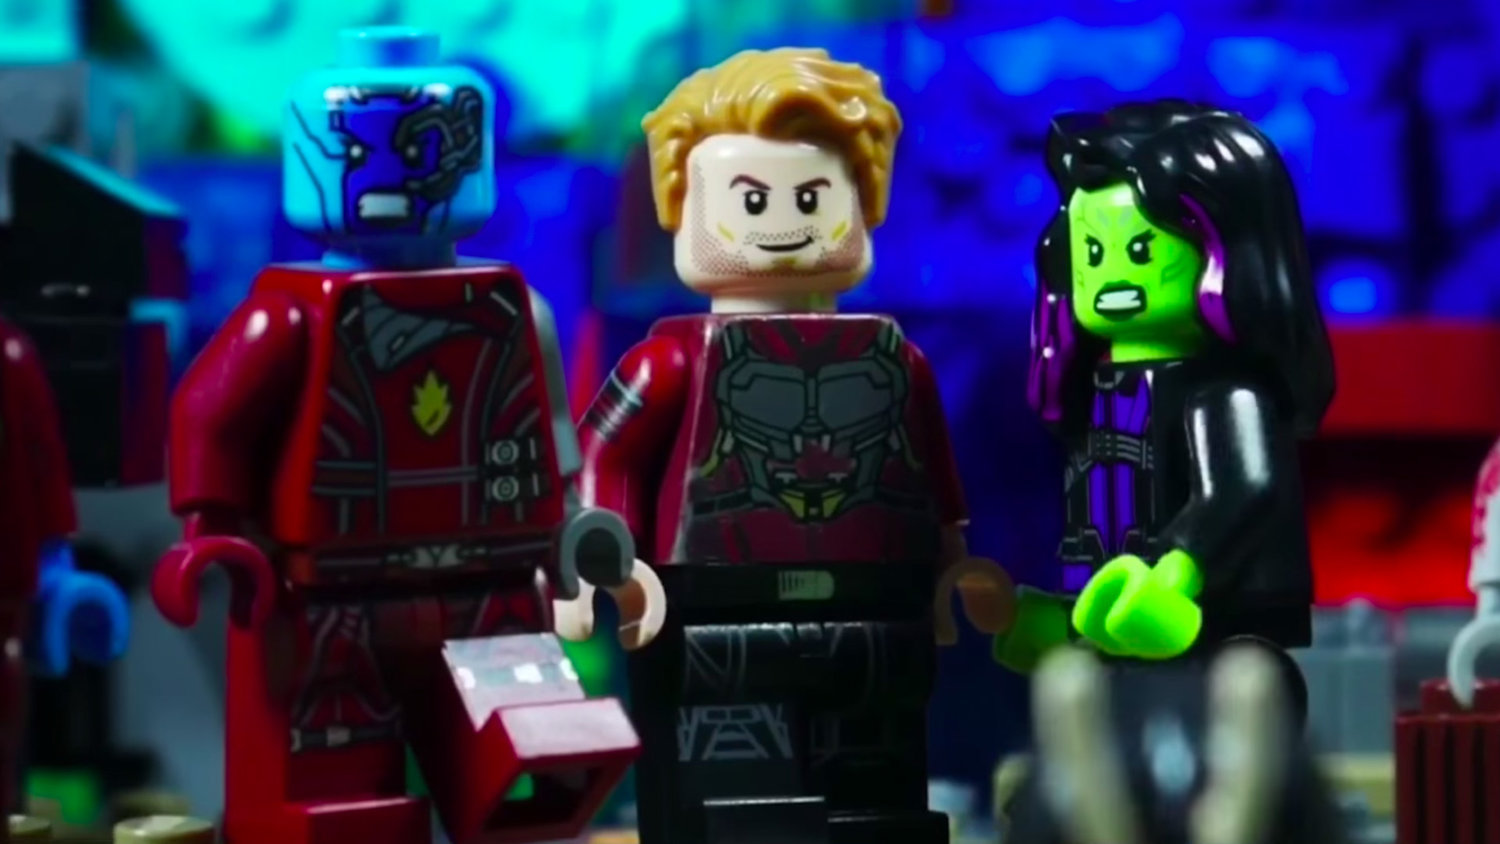 Newest GUARDIANS OF THE GALAXY VOL. 2 Trailer Gets the LEGO Treatment